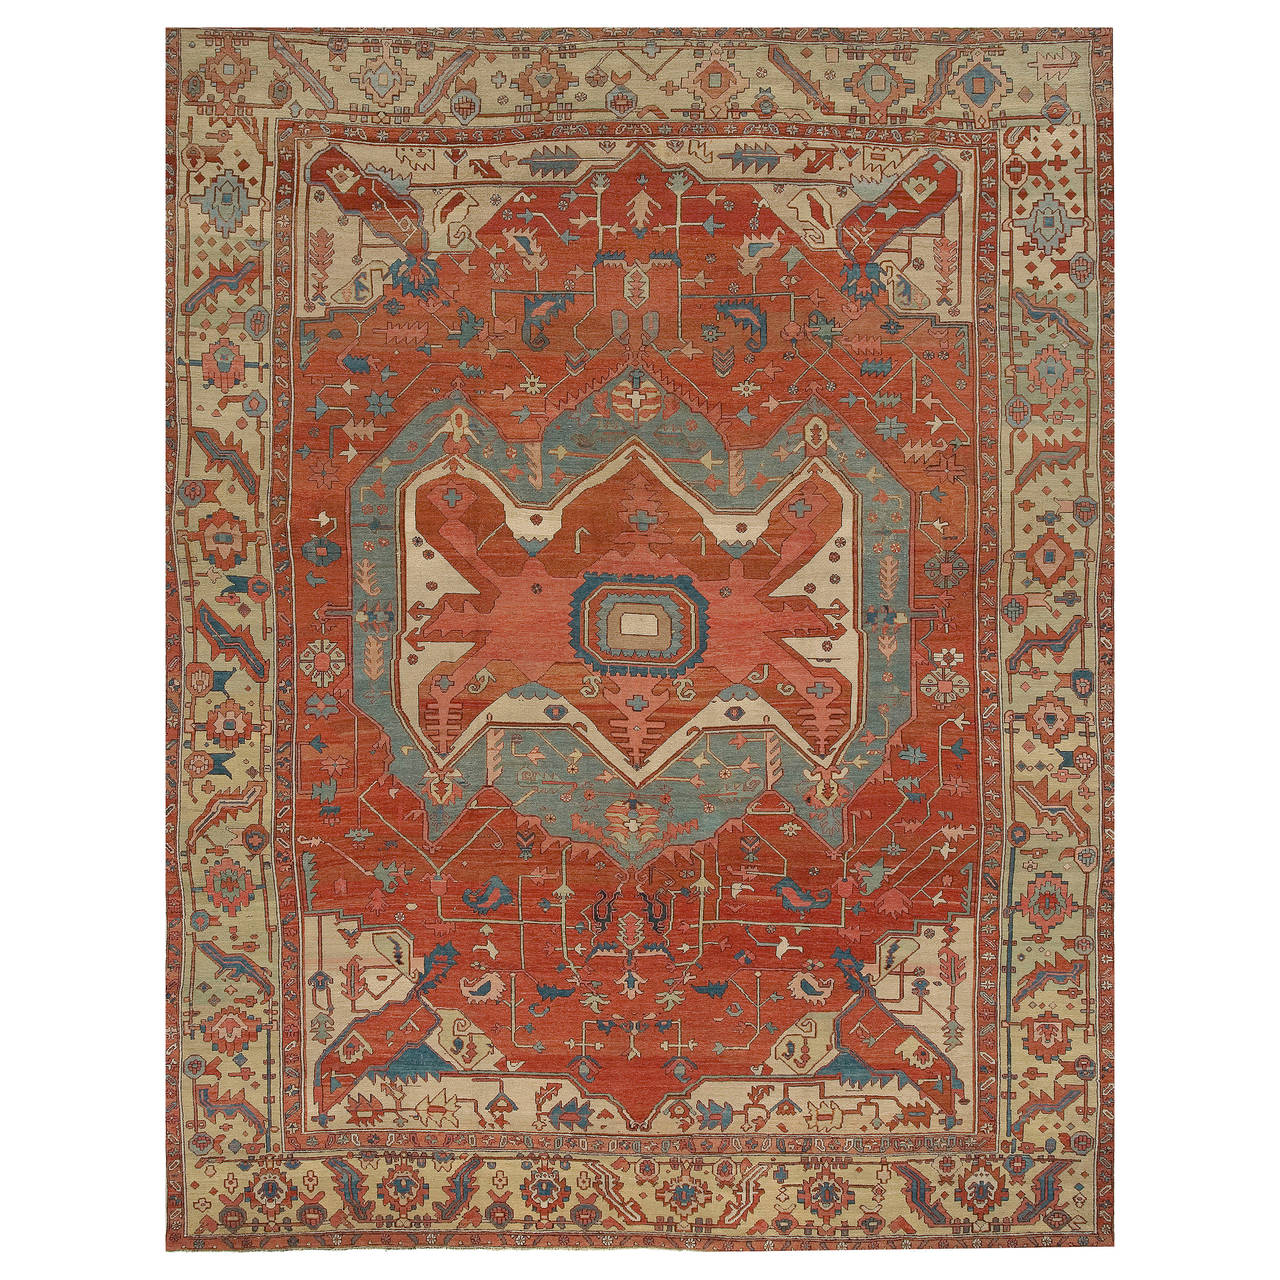 Antique Heriz Serapi Rug Circa 1890 For Sale At 1stdibs